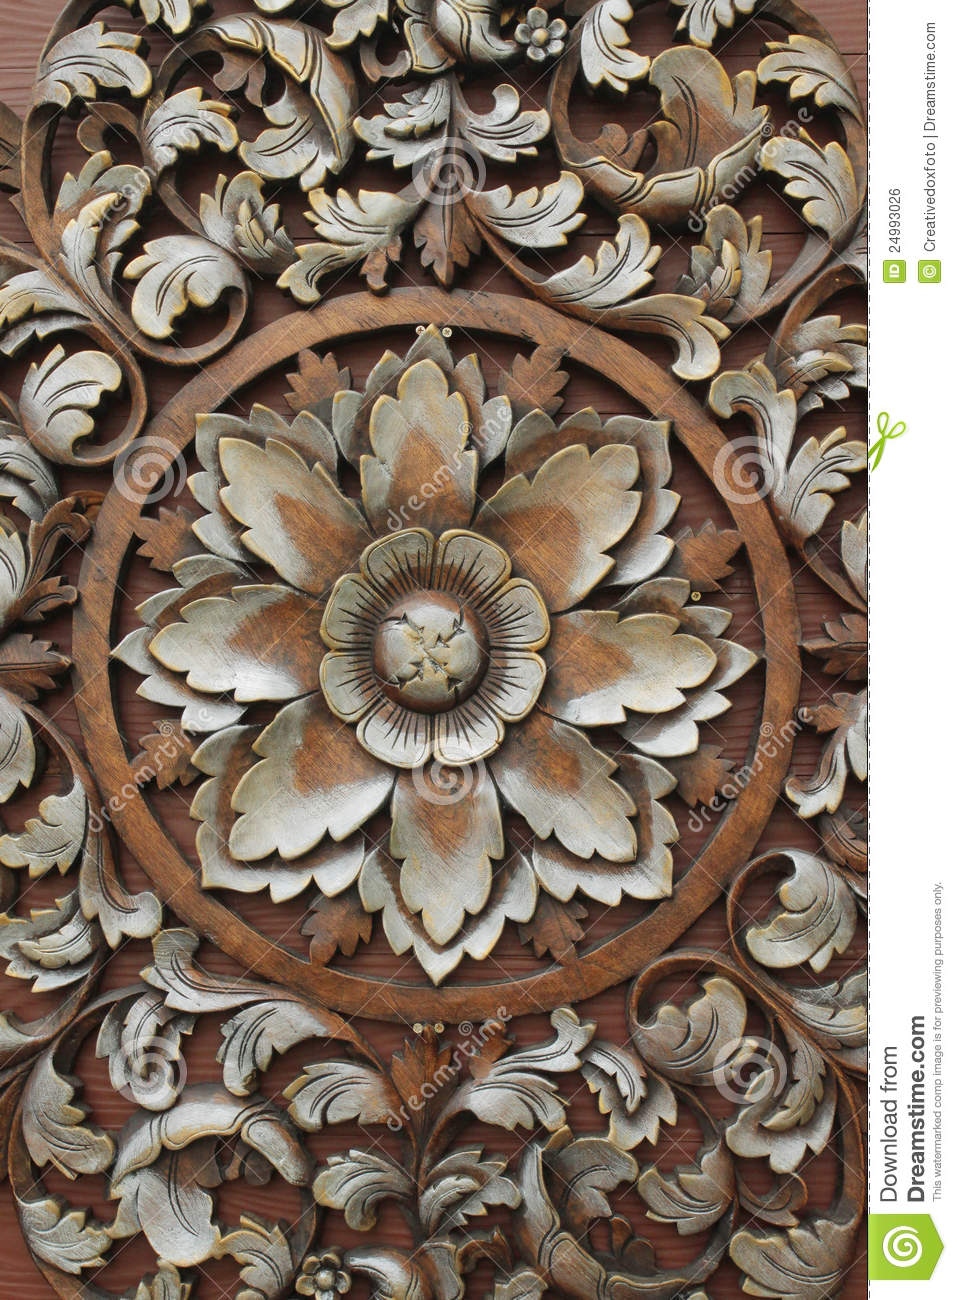 Wood Carving Patterns New Design Ideas